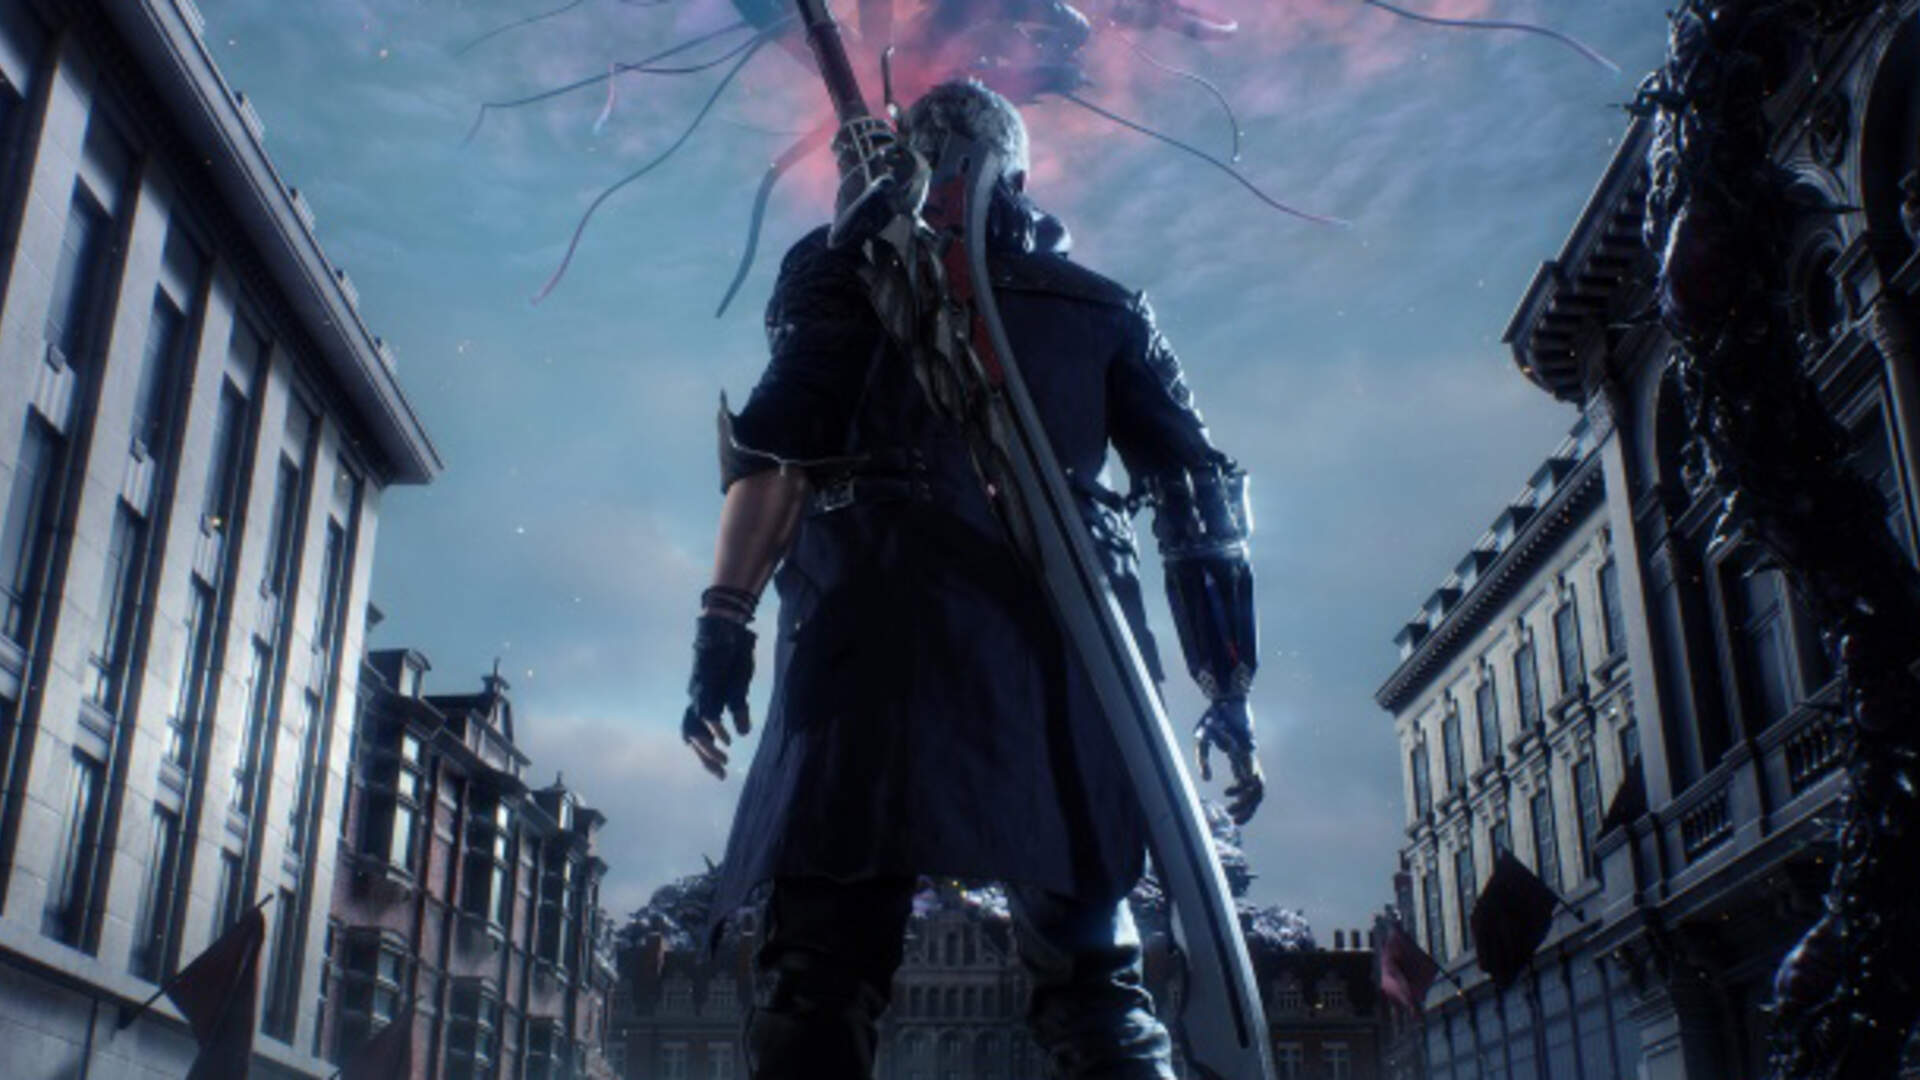 New Devil May Cry 5 Demo Coming to Xbox One and PS4 Next Month